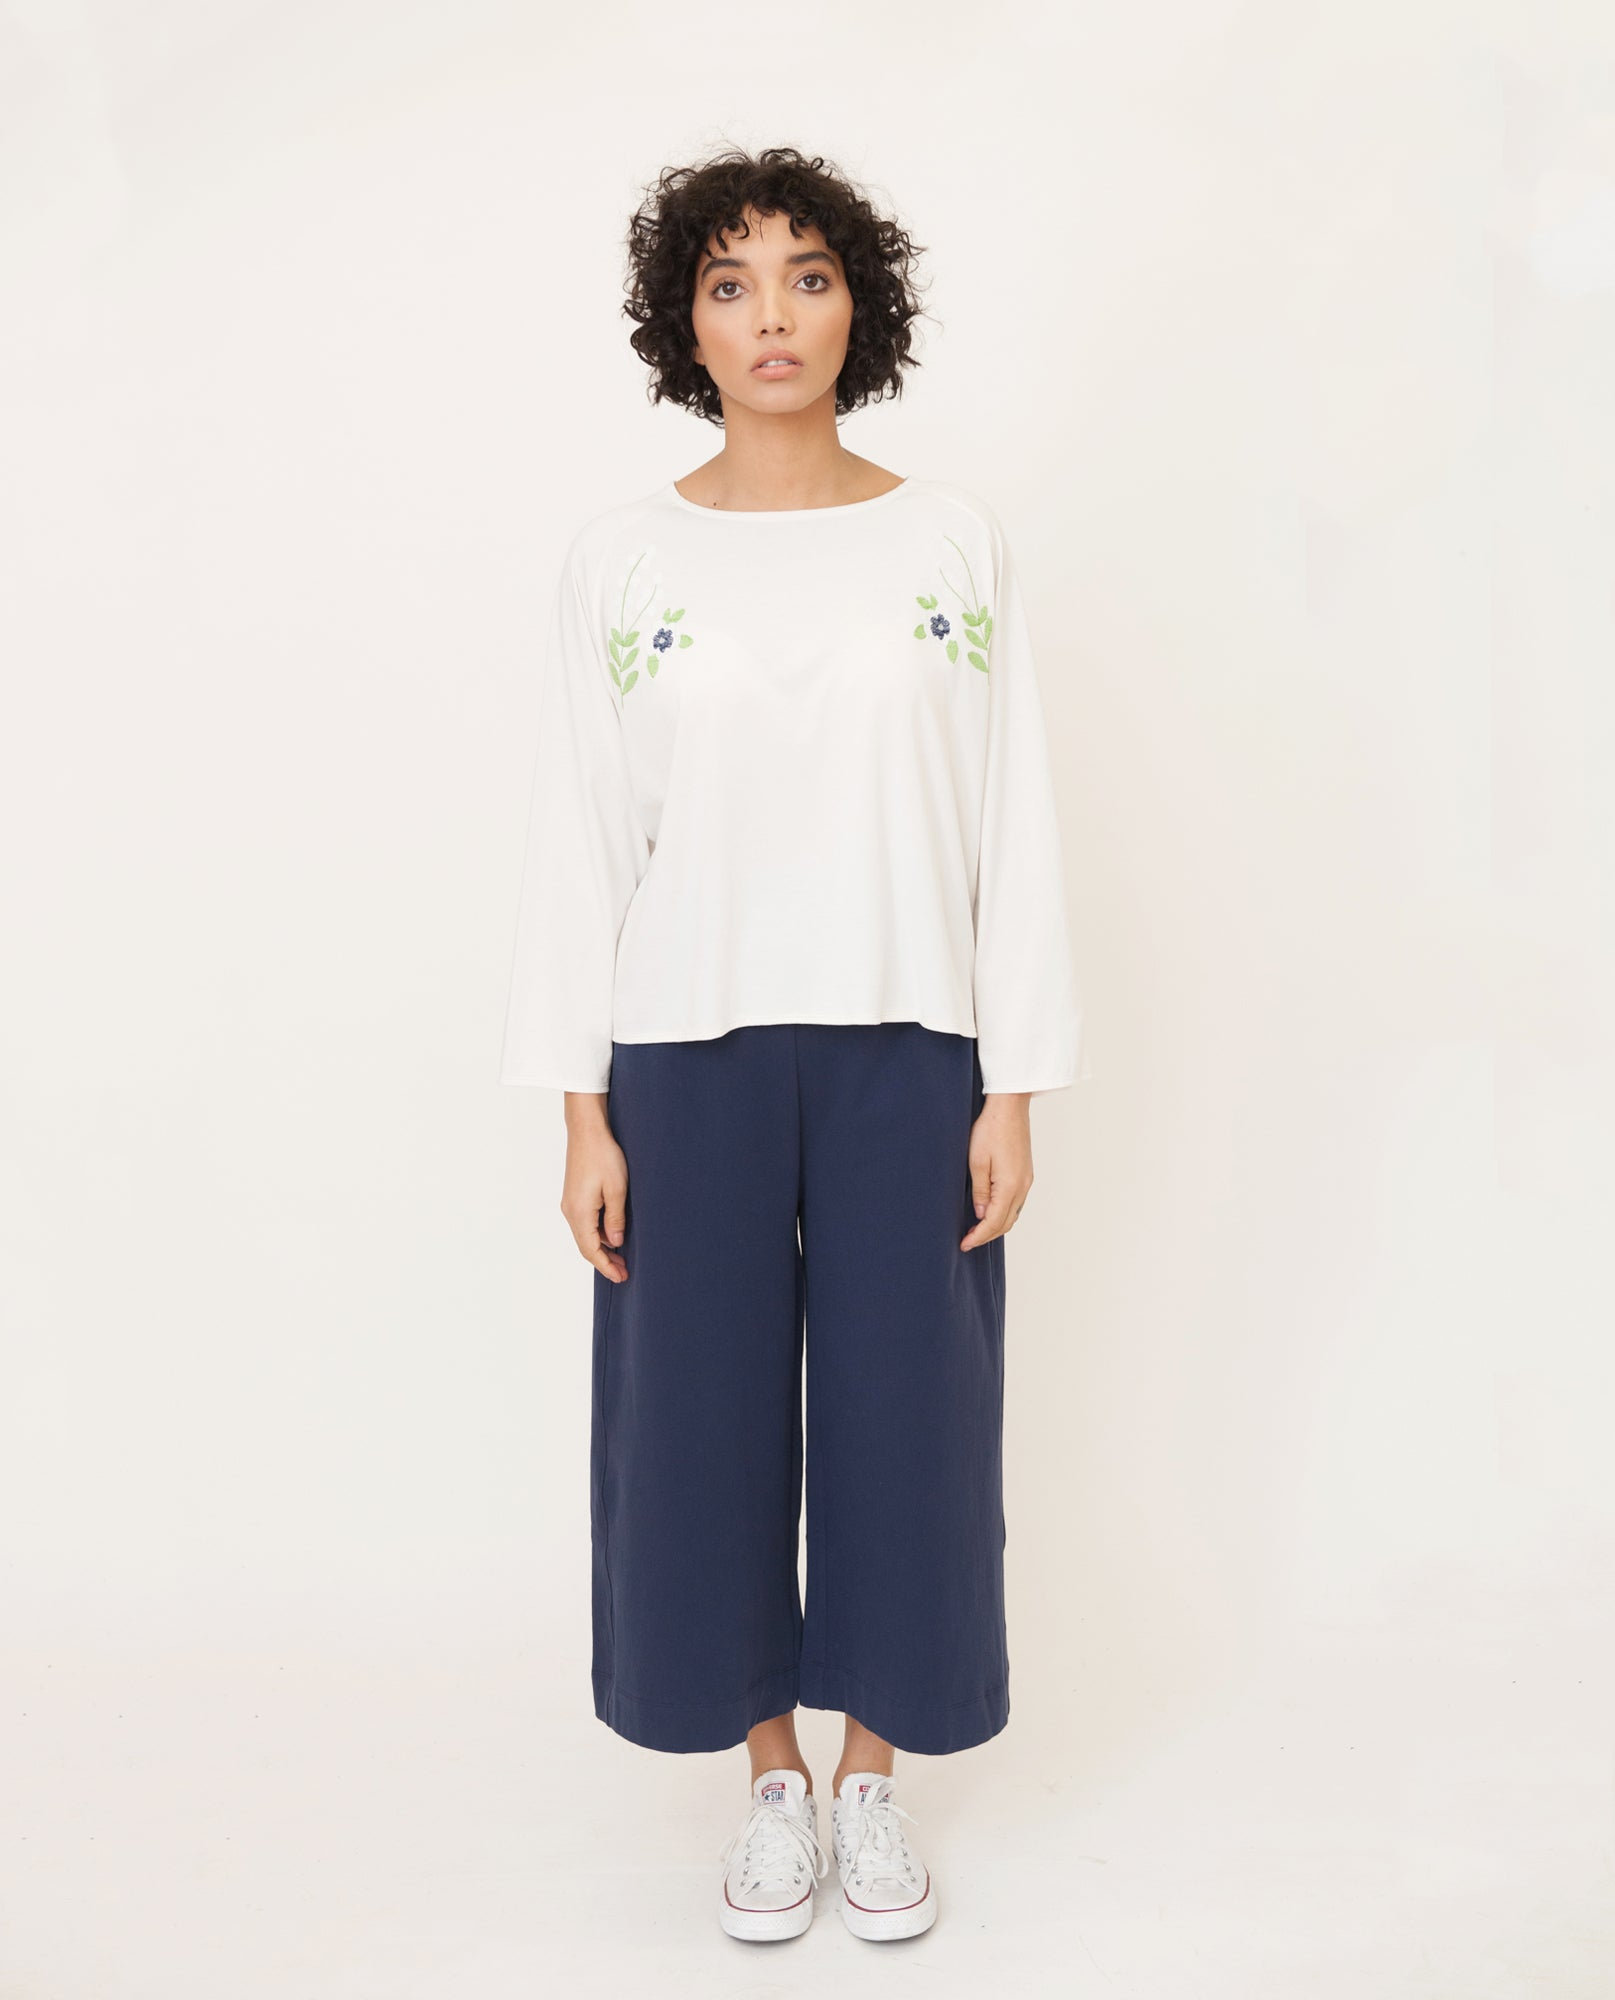 LORELAI Organic Cotton Top In Off White from Beaumont Organic